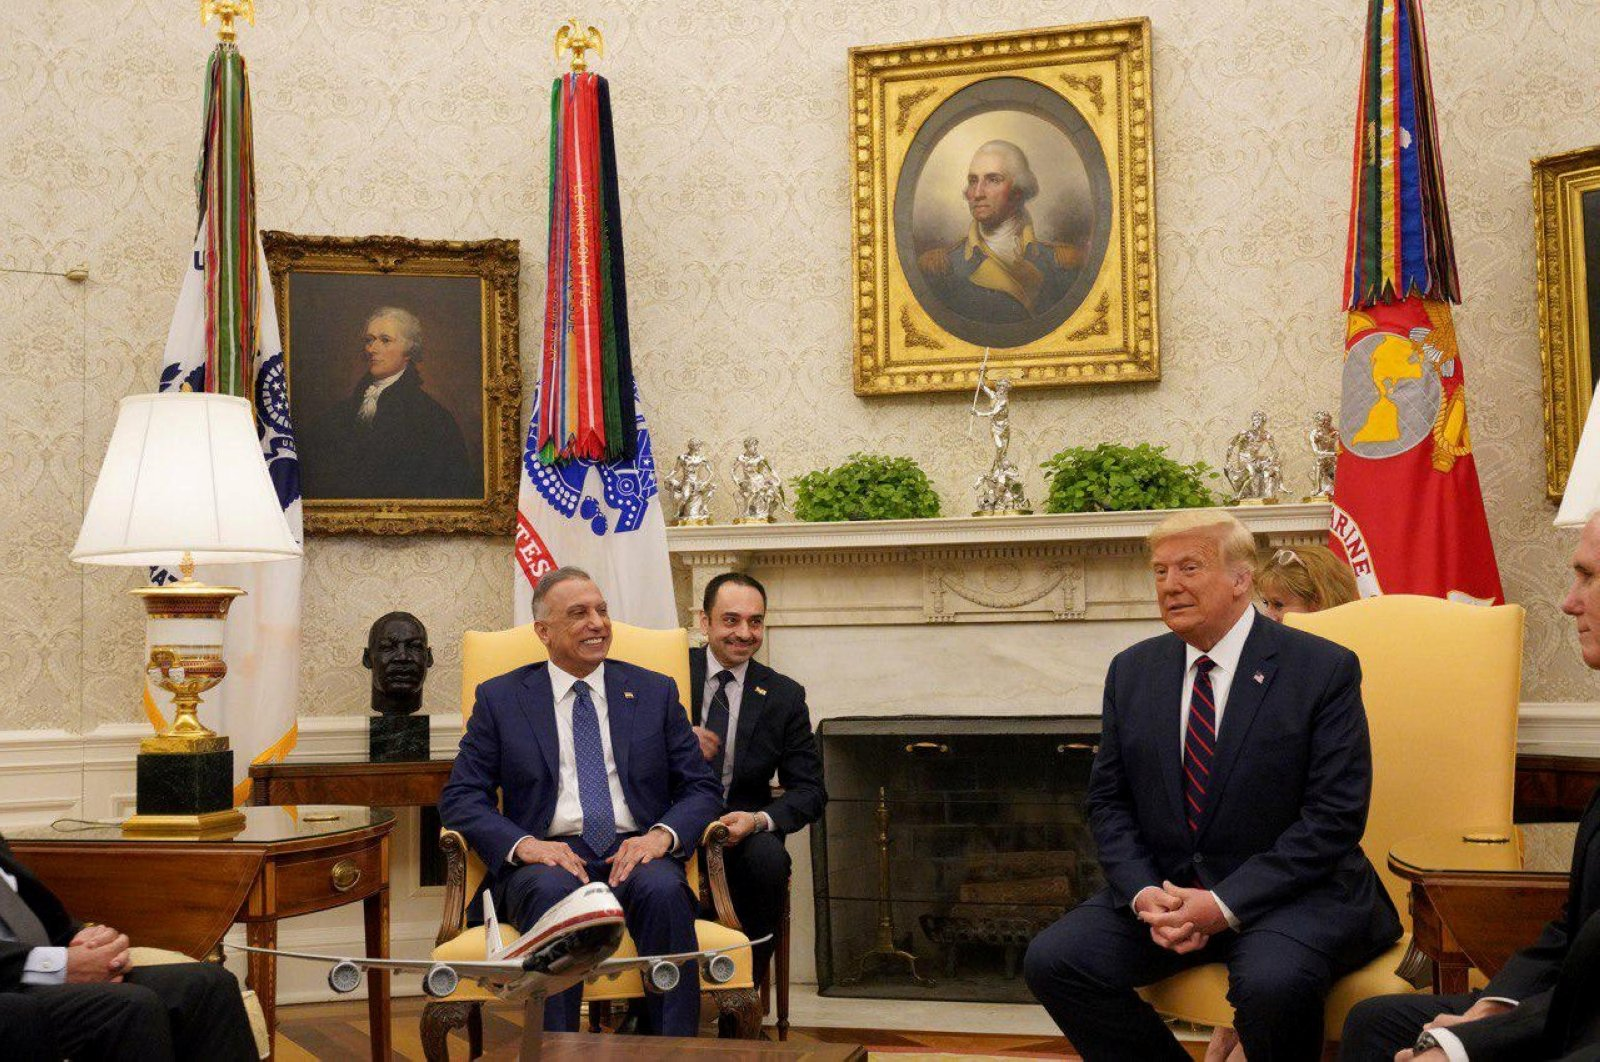 Iraq's Prime Minister Mustafa al-Kadhimi (L) meets with U.S. President Donald Trump (R) in the Oval Office at the White House, Washington, U.S., Aug. 20, 2020. (REUTERS Photo)